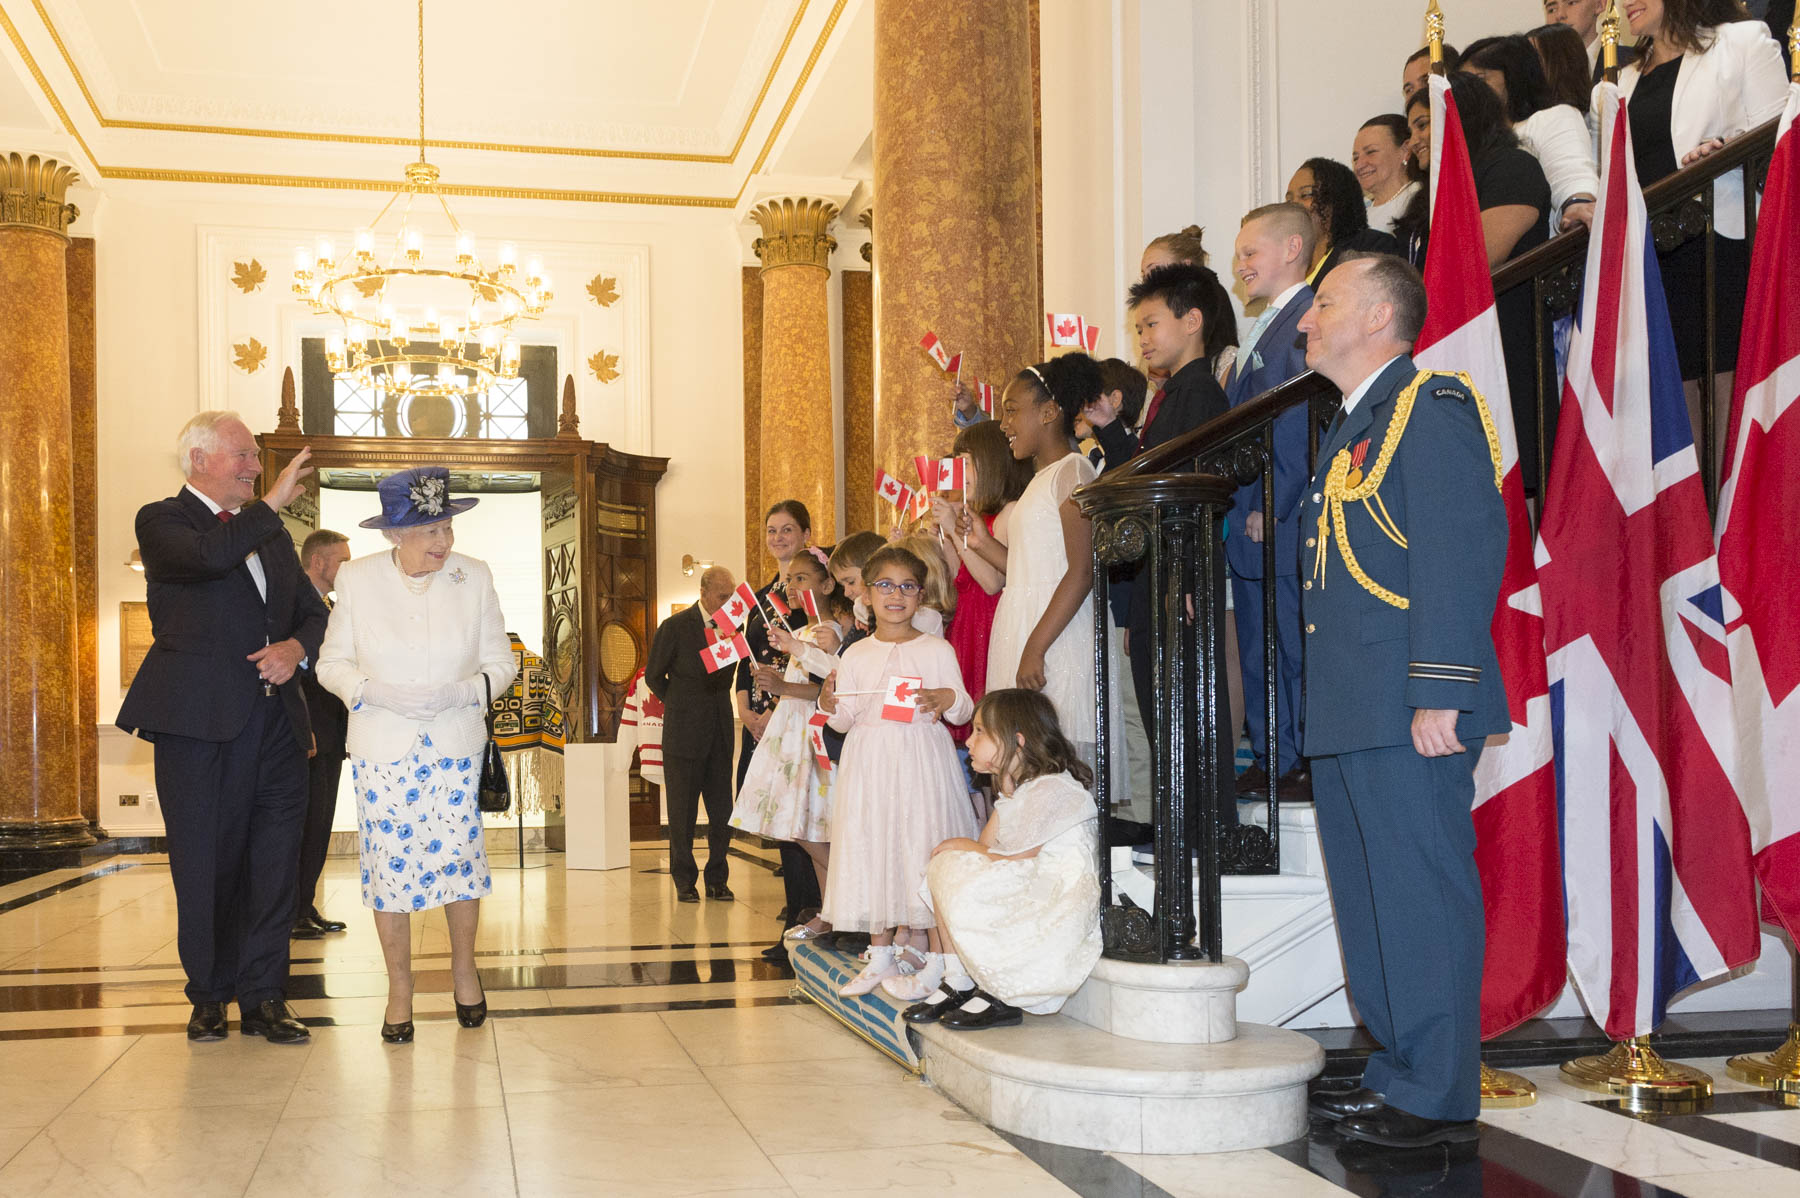 On this occasion, The Queen and The Duke of Edinburgh had the opportunity to meet 